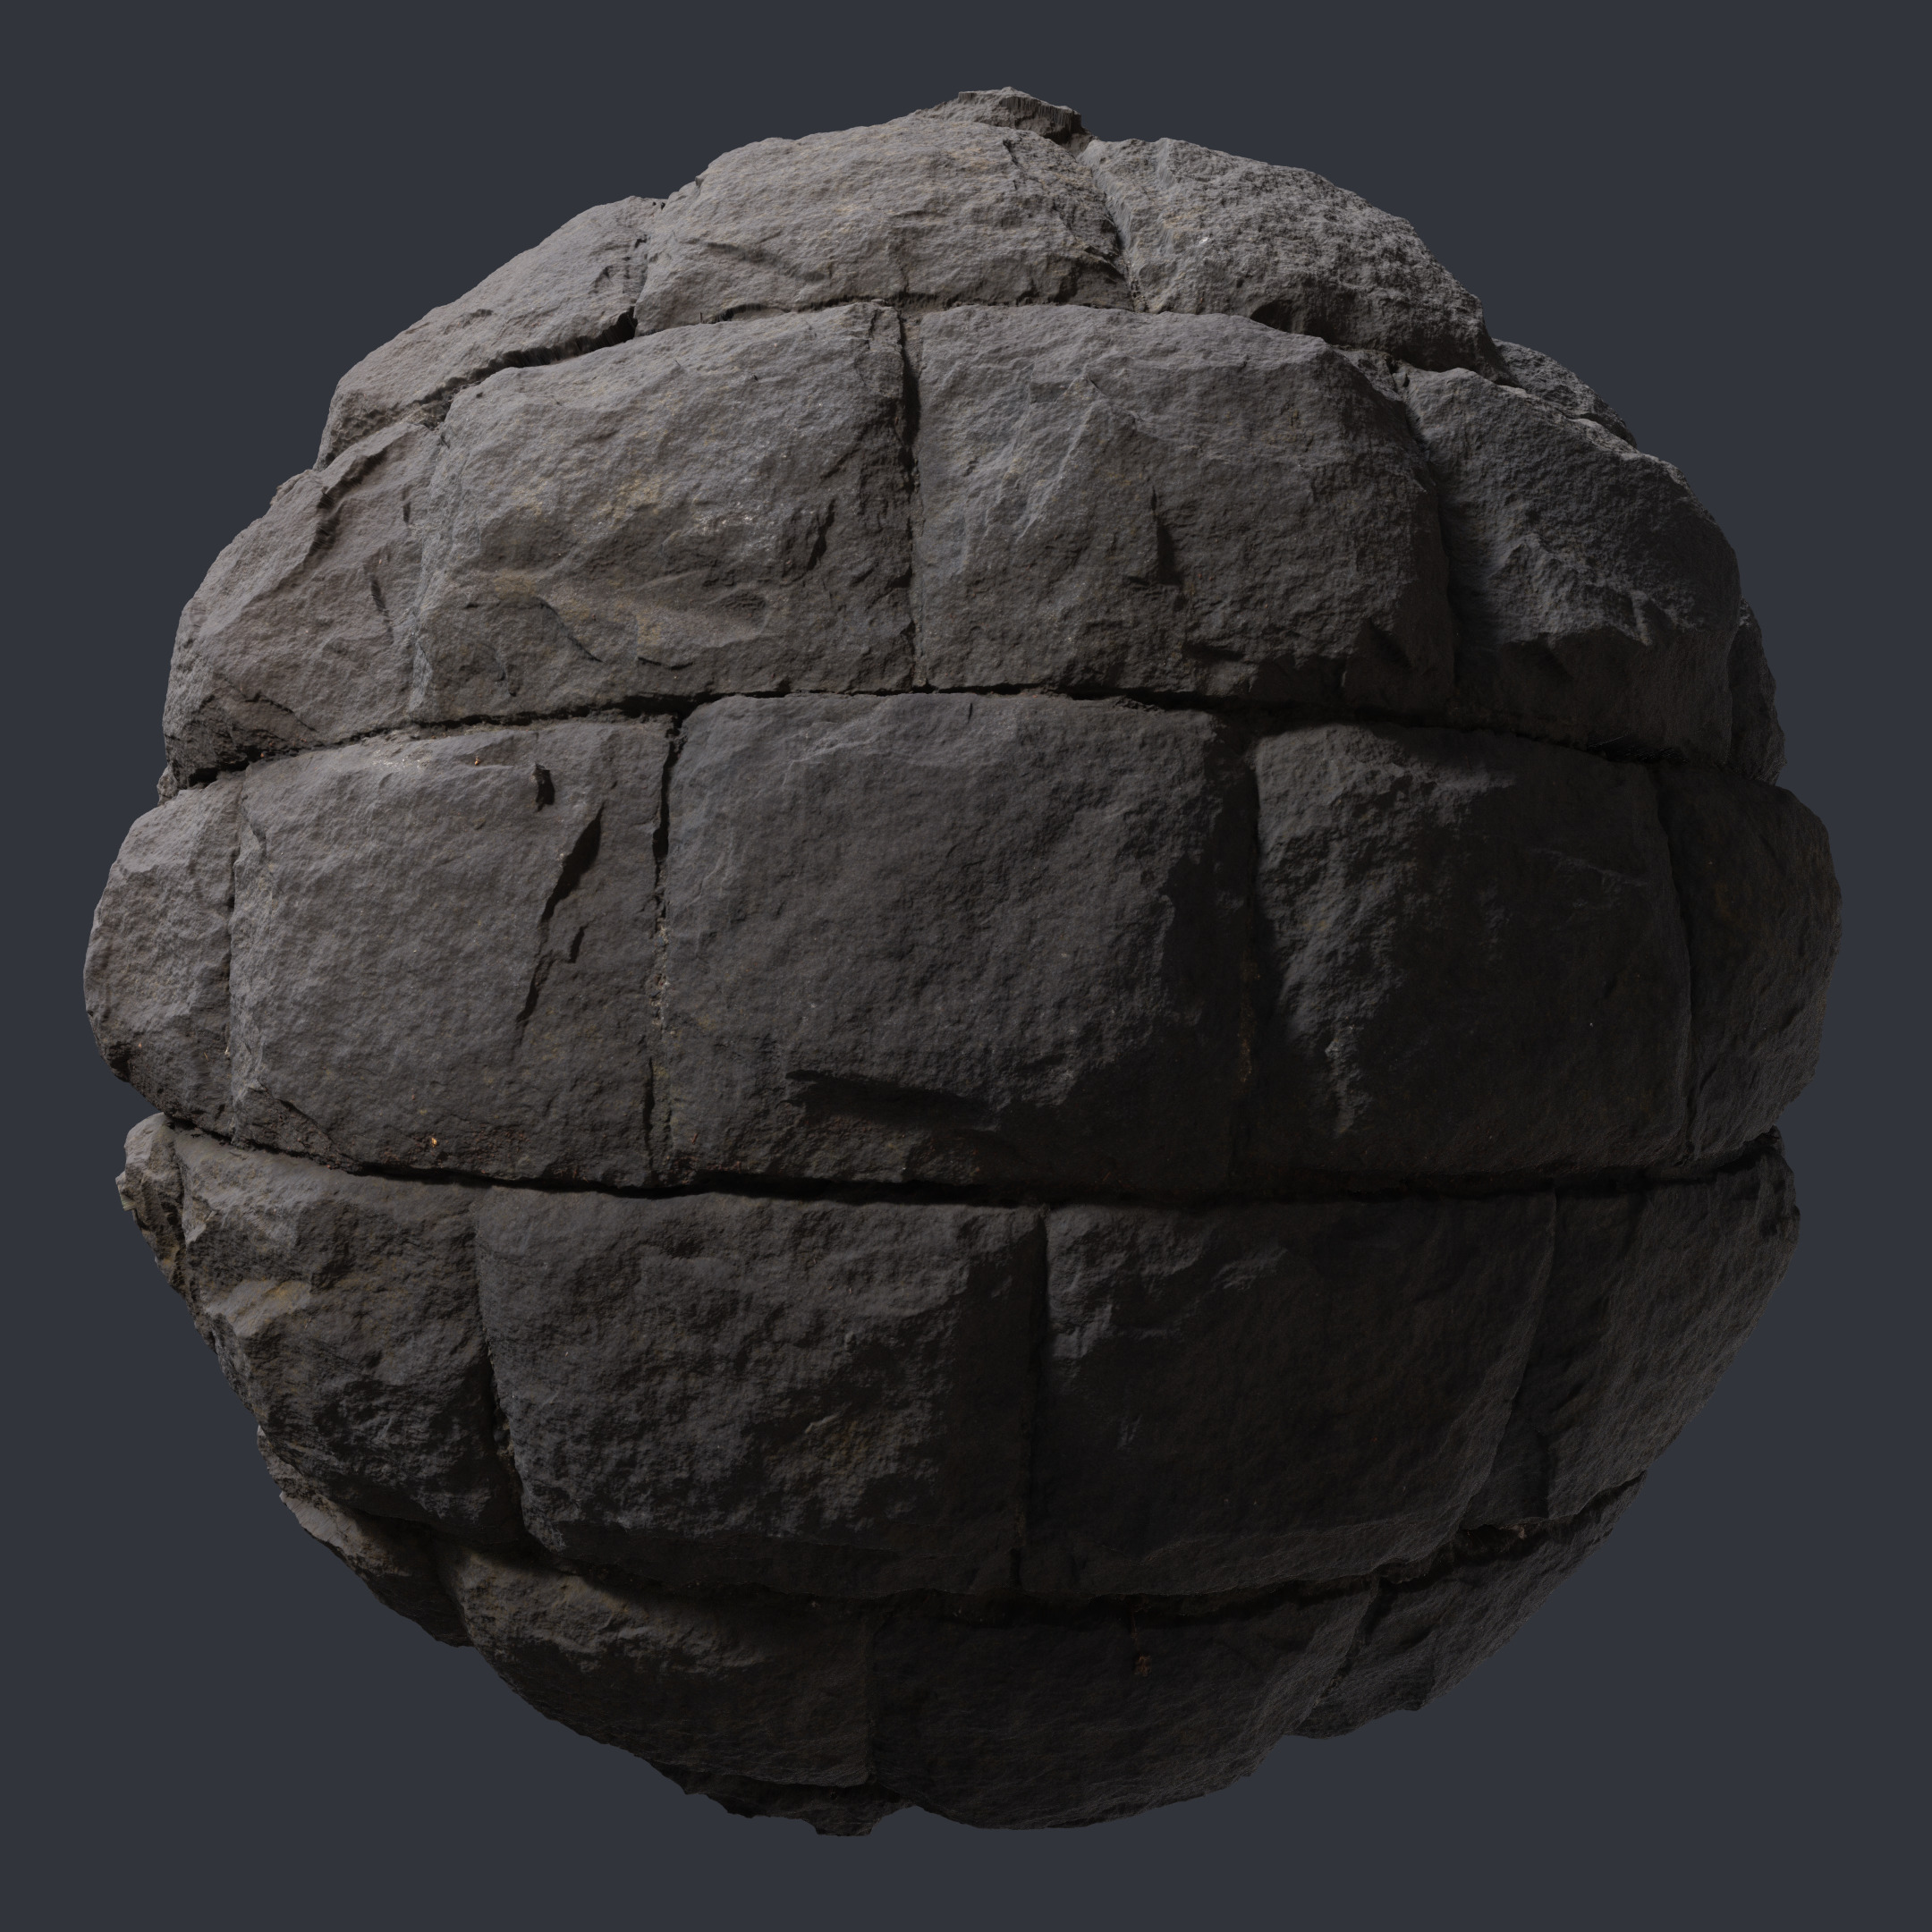 3d Scanned Stone Wall 2x2 Meters